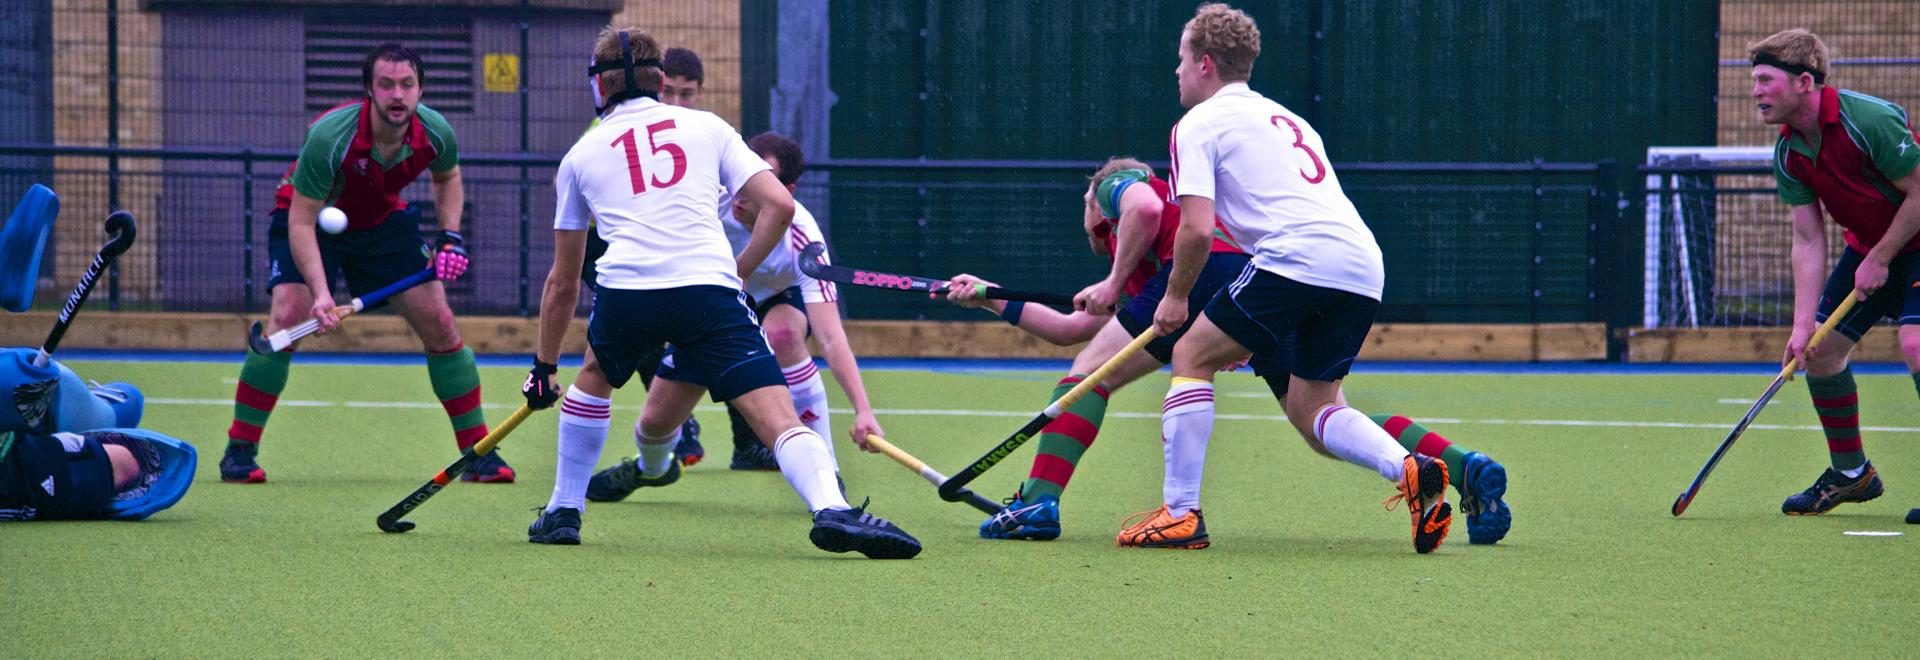 Men playing hockey